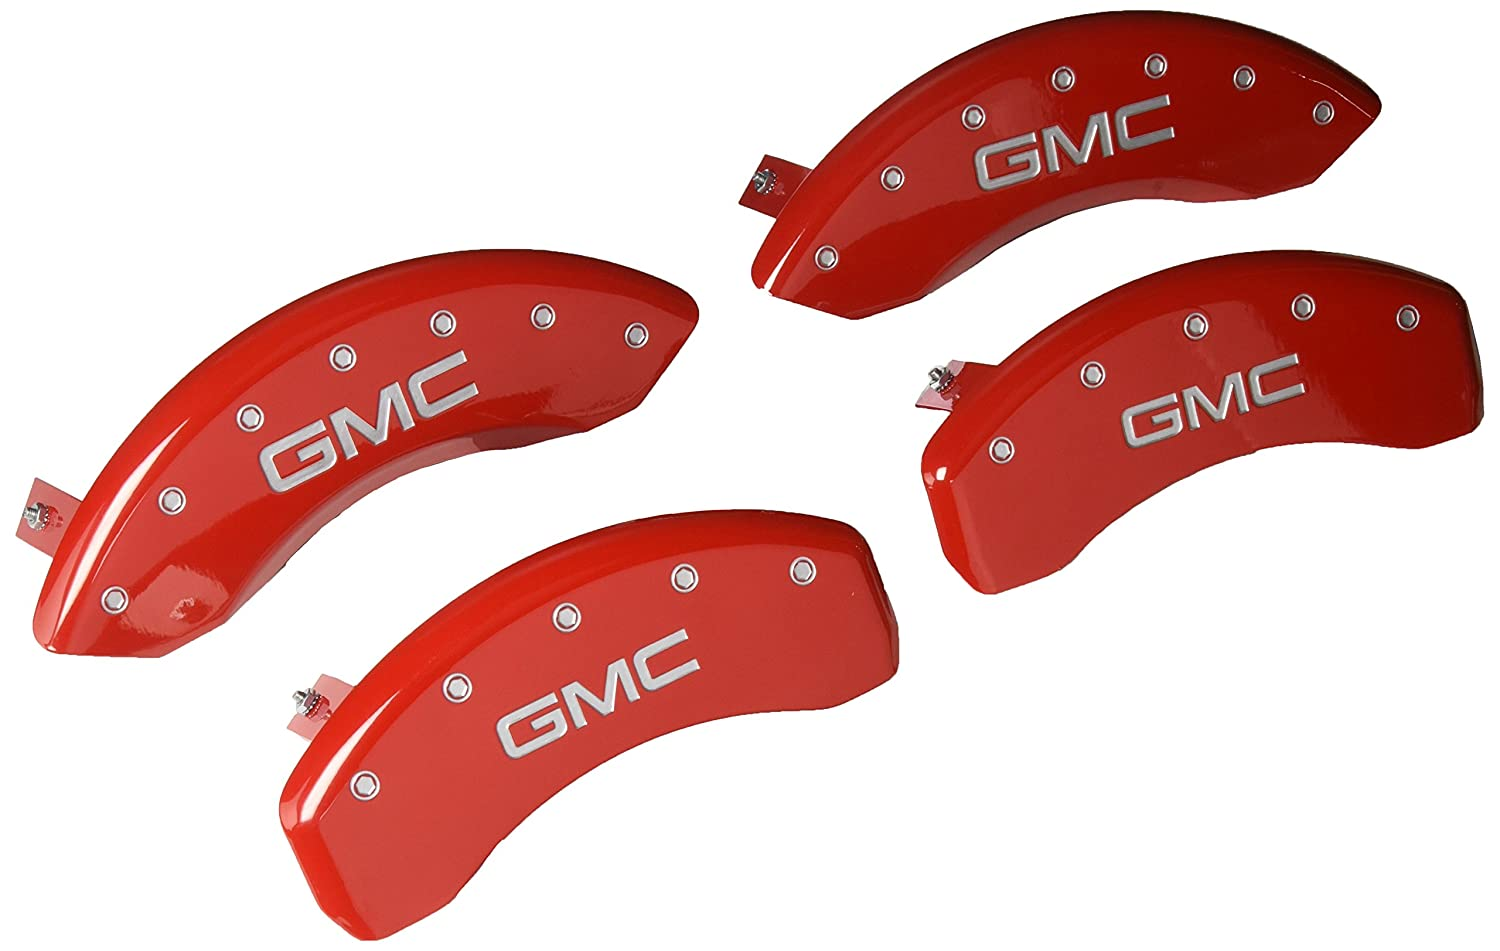 MGP Caliper Covers 34015SGMCRD Caliper Cover (Red Powder Coat Finish, Engraved Front and Rear: GMC, Silver Characters, Set of 4)